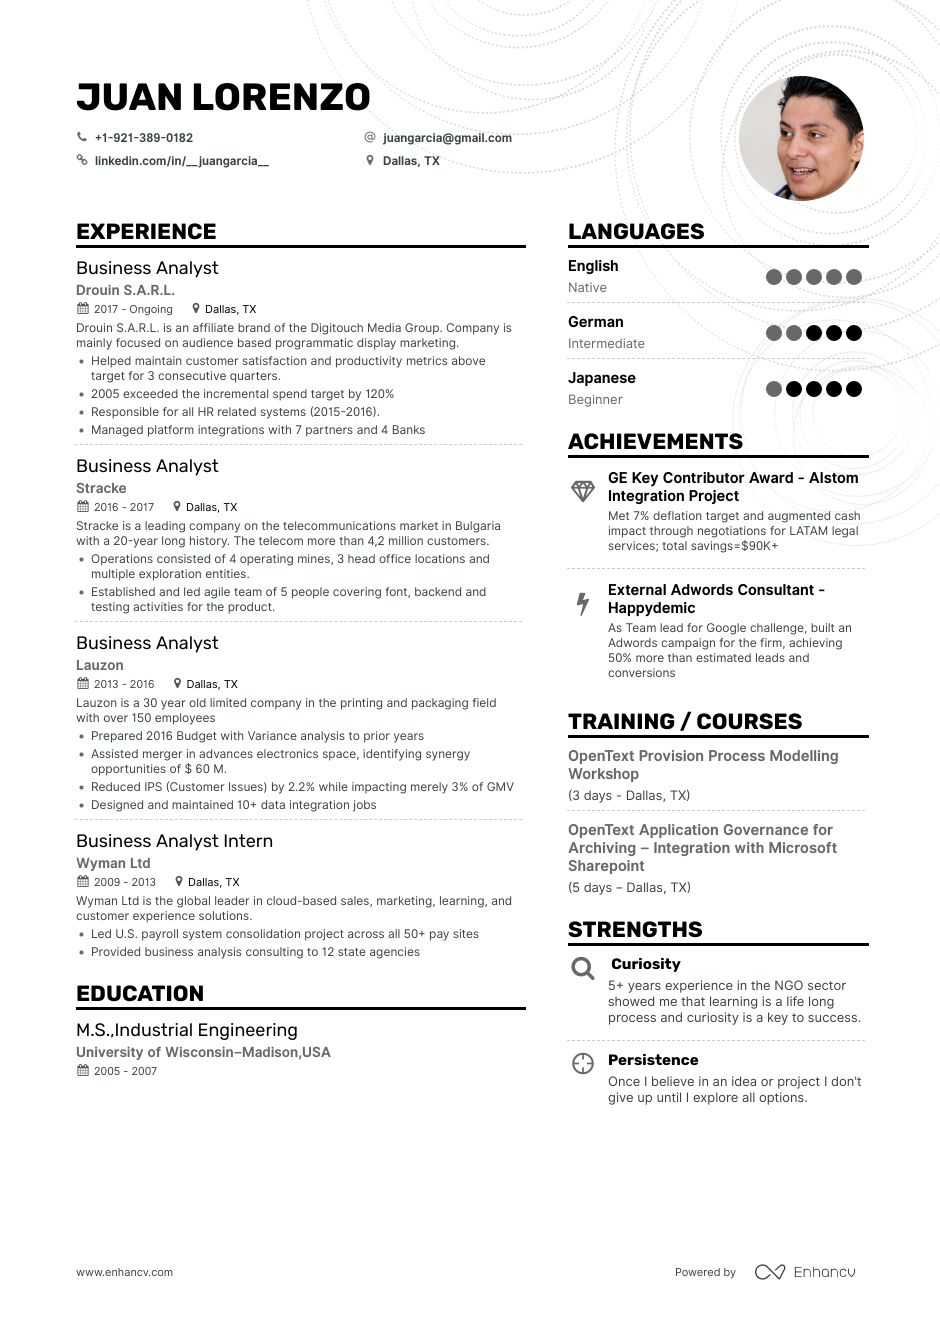 the best business analyst resume examples skills to get you hired for executive assistant Resume Skills For Analyst Resume